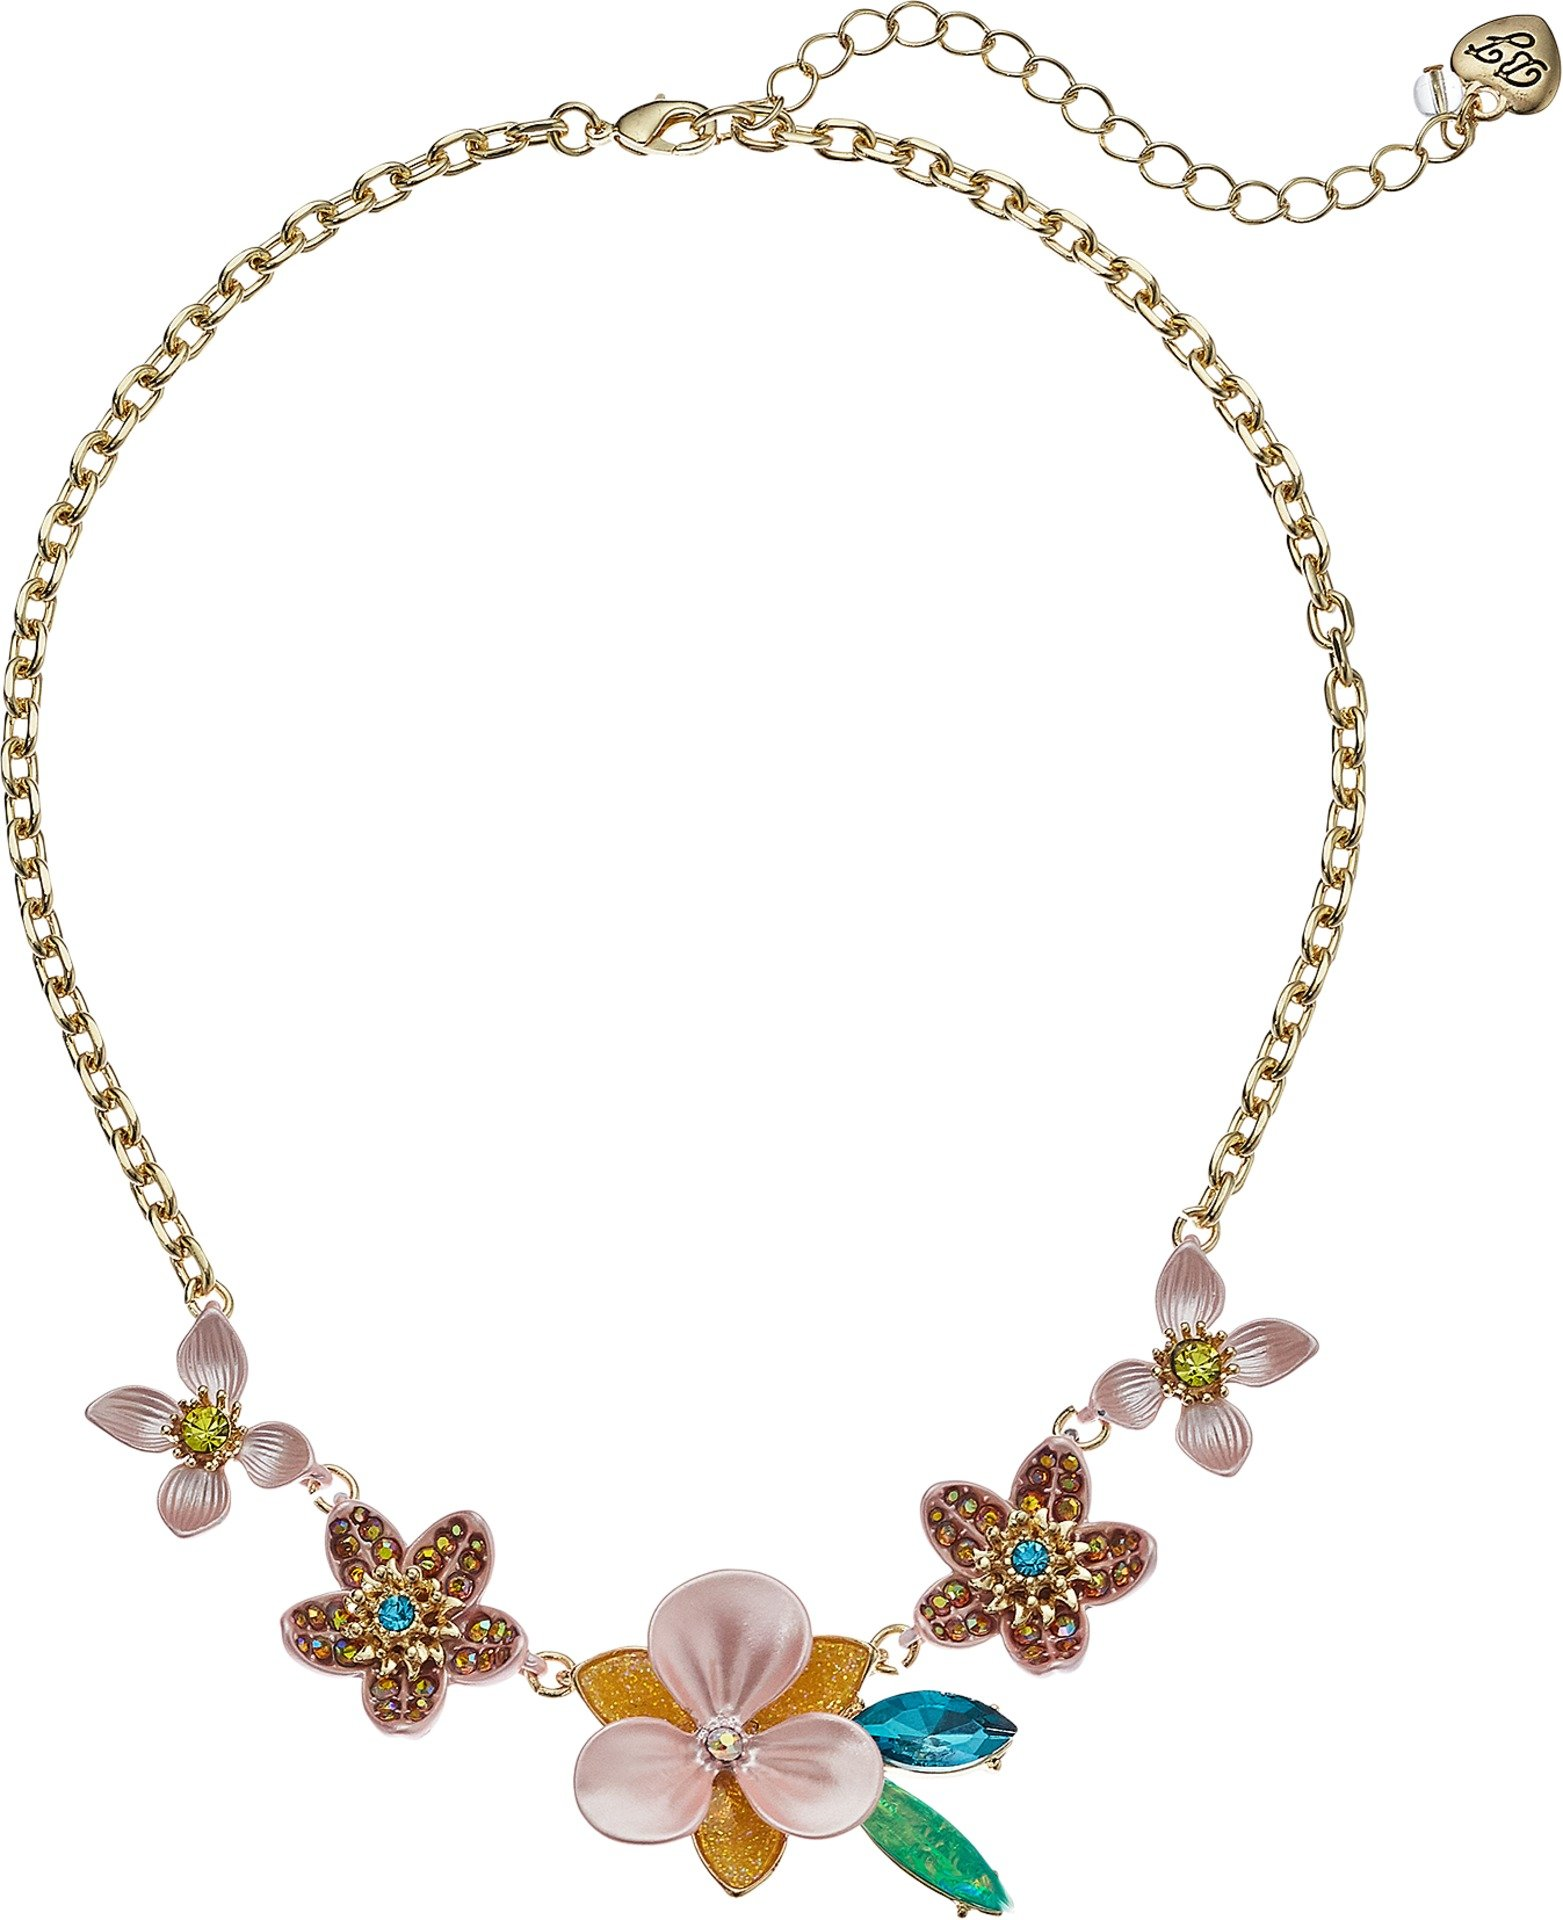 Betsey Johnson (GBG)) Paradise Lost Women's Pink And Yellow Flower Frontal Strand Necklace, One Size